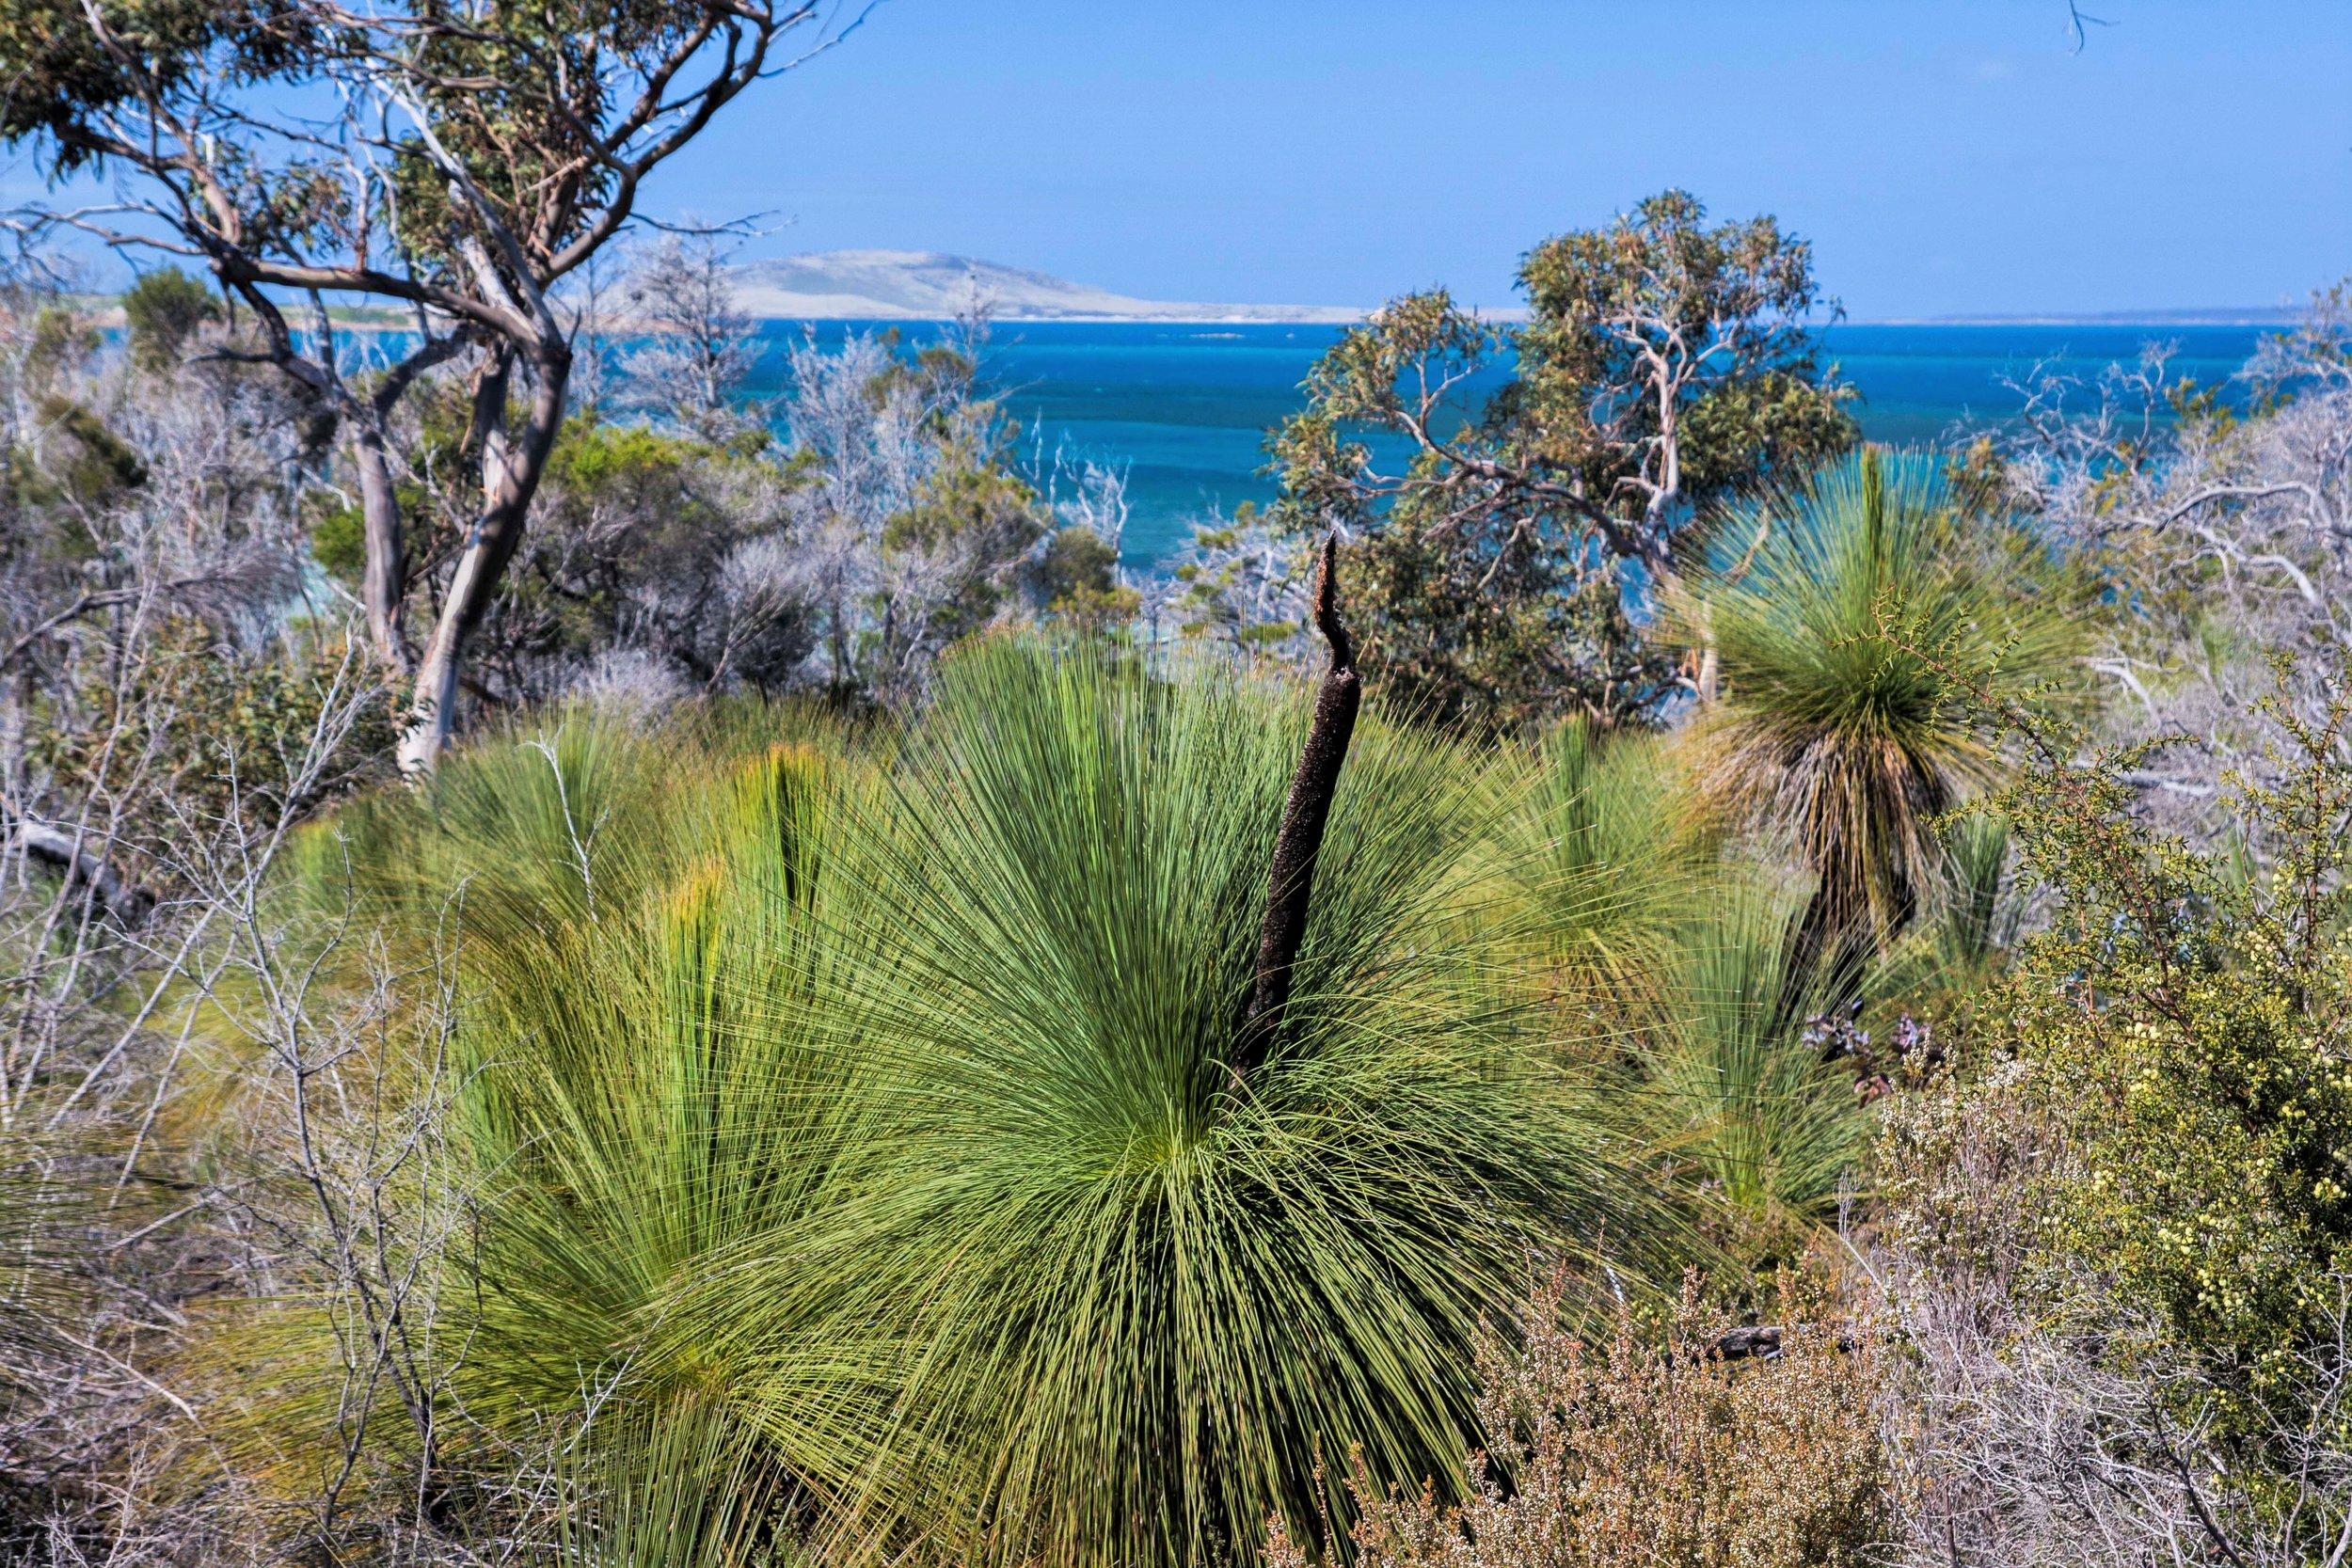 Grass trees with coastal forest and view of the ocean in Strzelecki National Park on Flinders Island, Tasmania, Australia